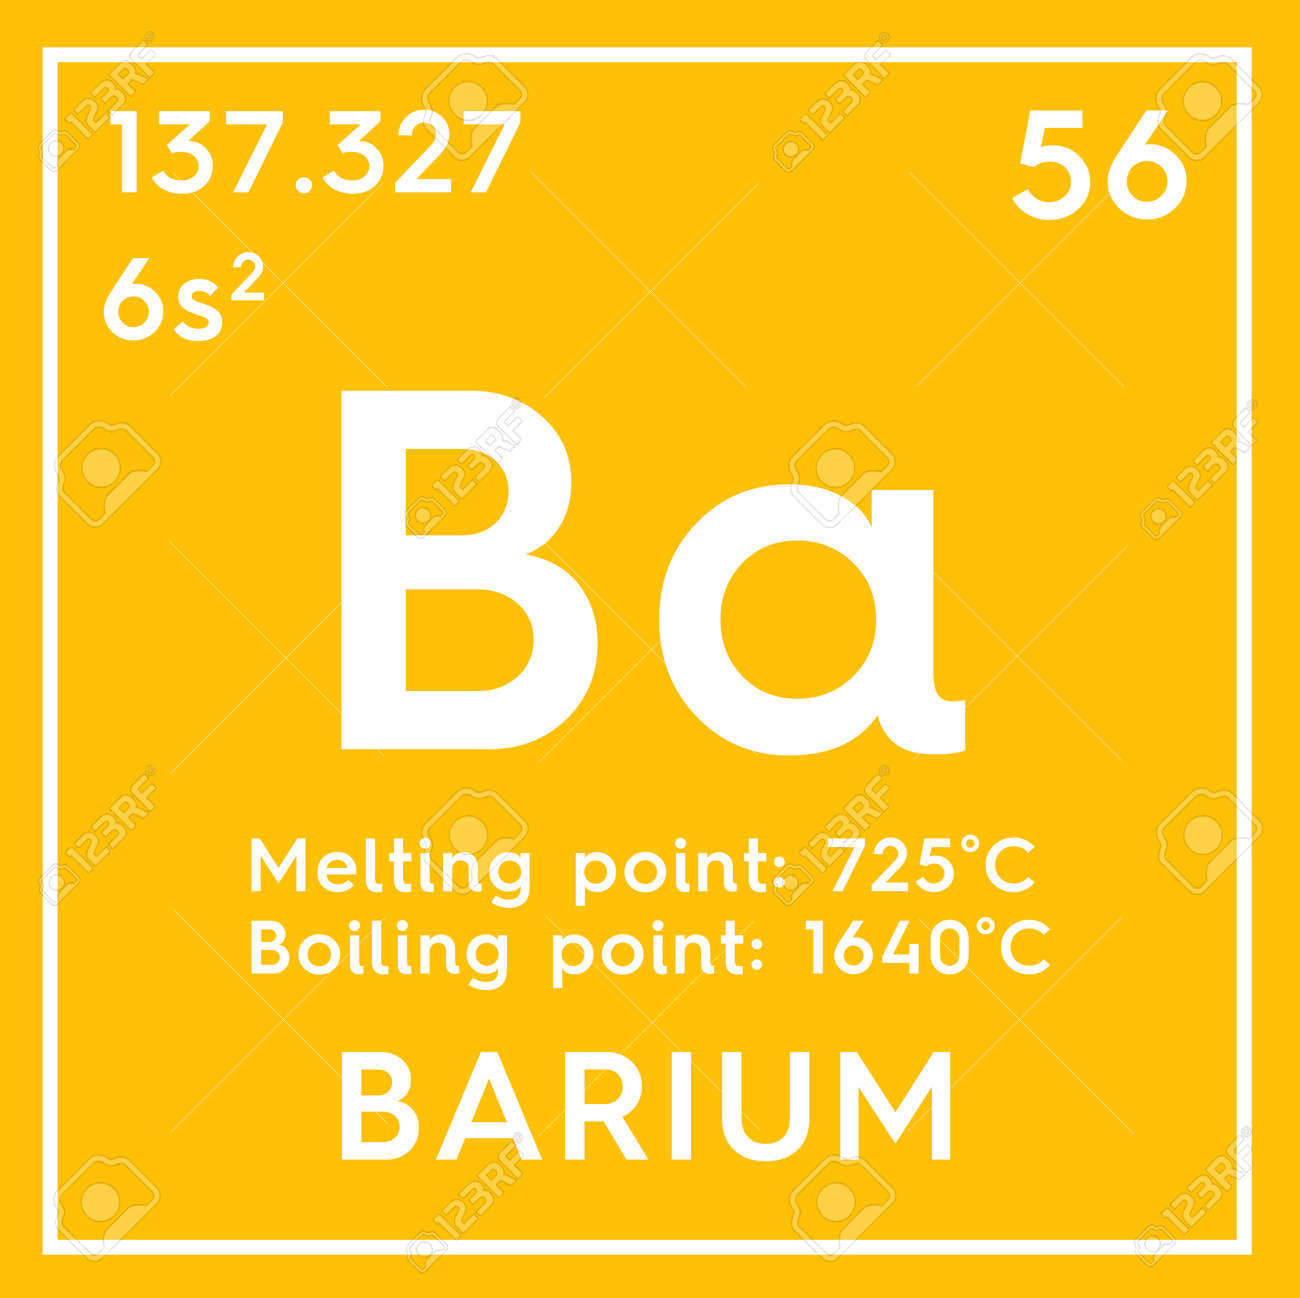 Barium alkaline earth metals chemical element of mendeleevs alkaline earth metals chemical element of mendeleevs periodic table barium in square urtaz Image collections